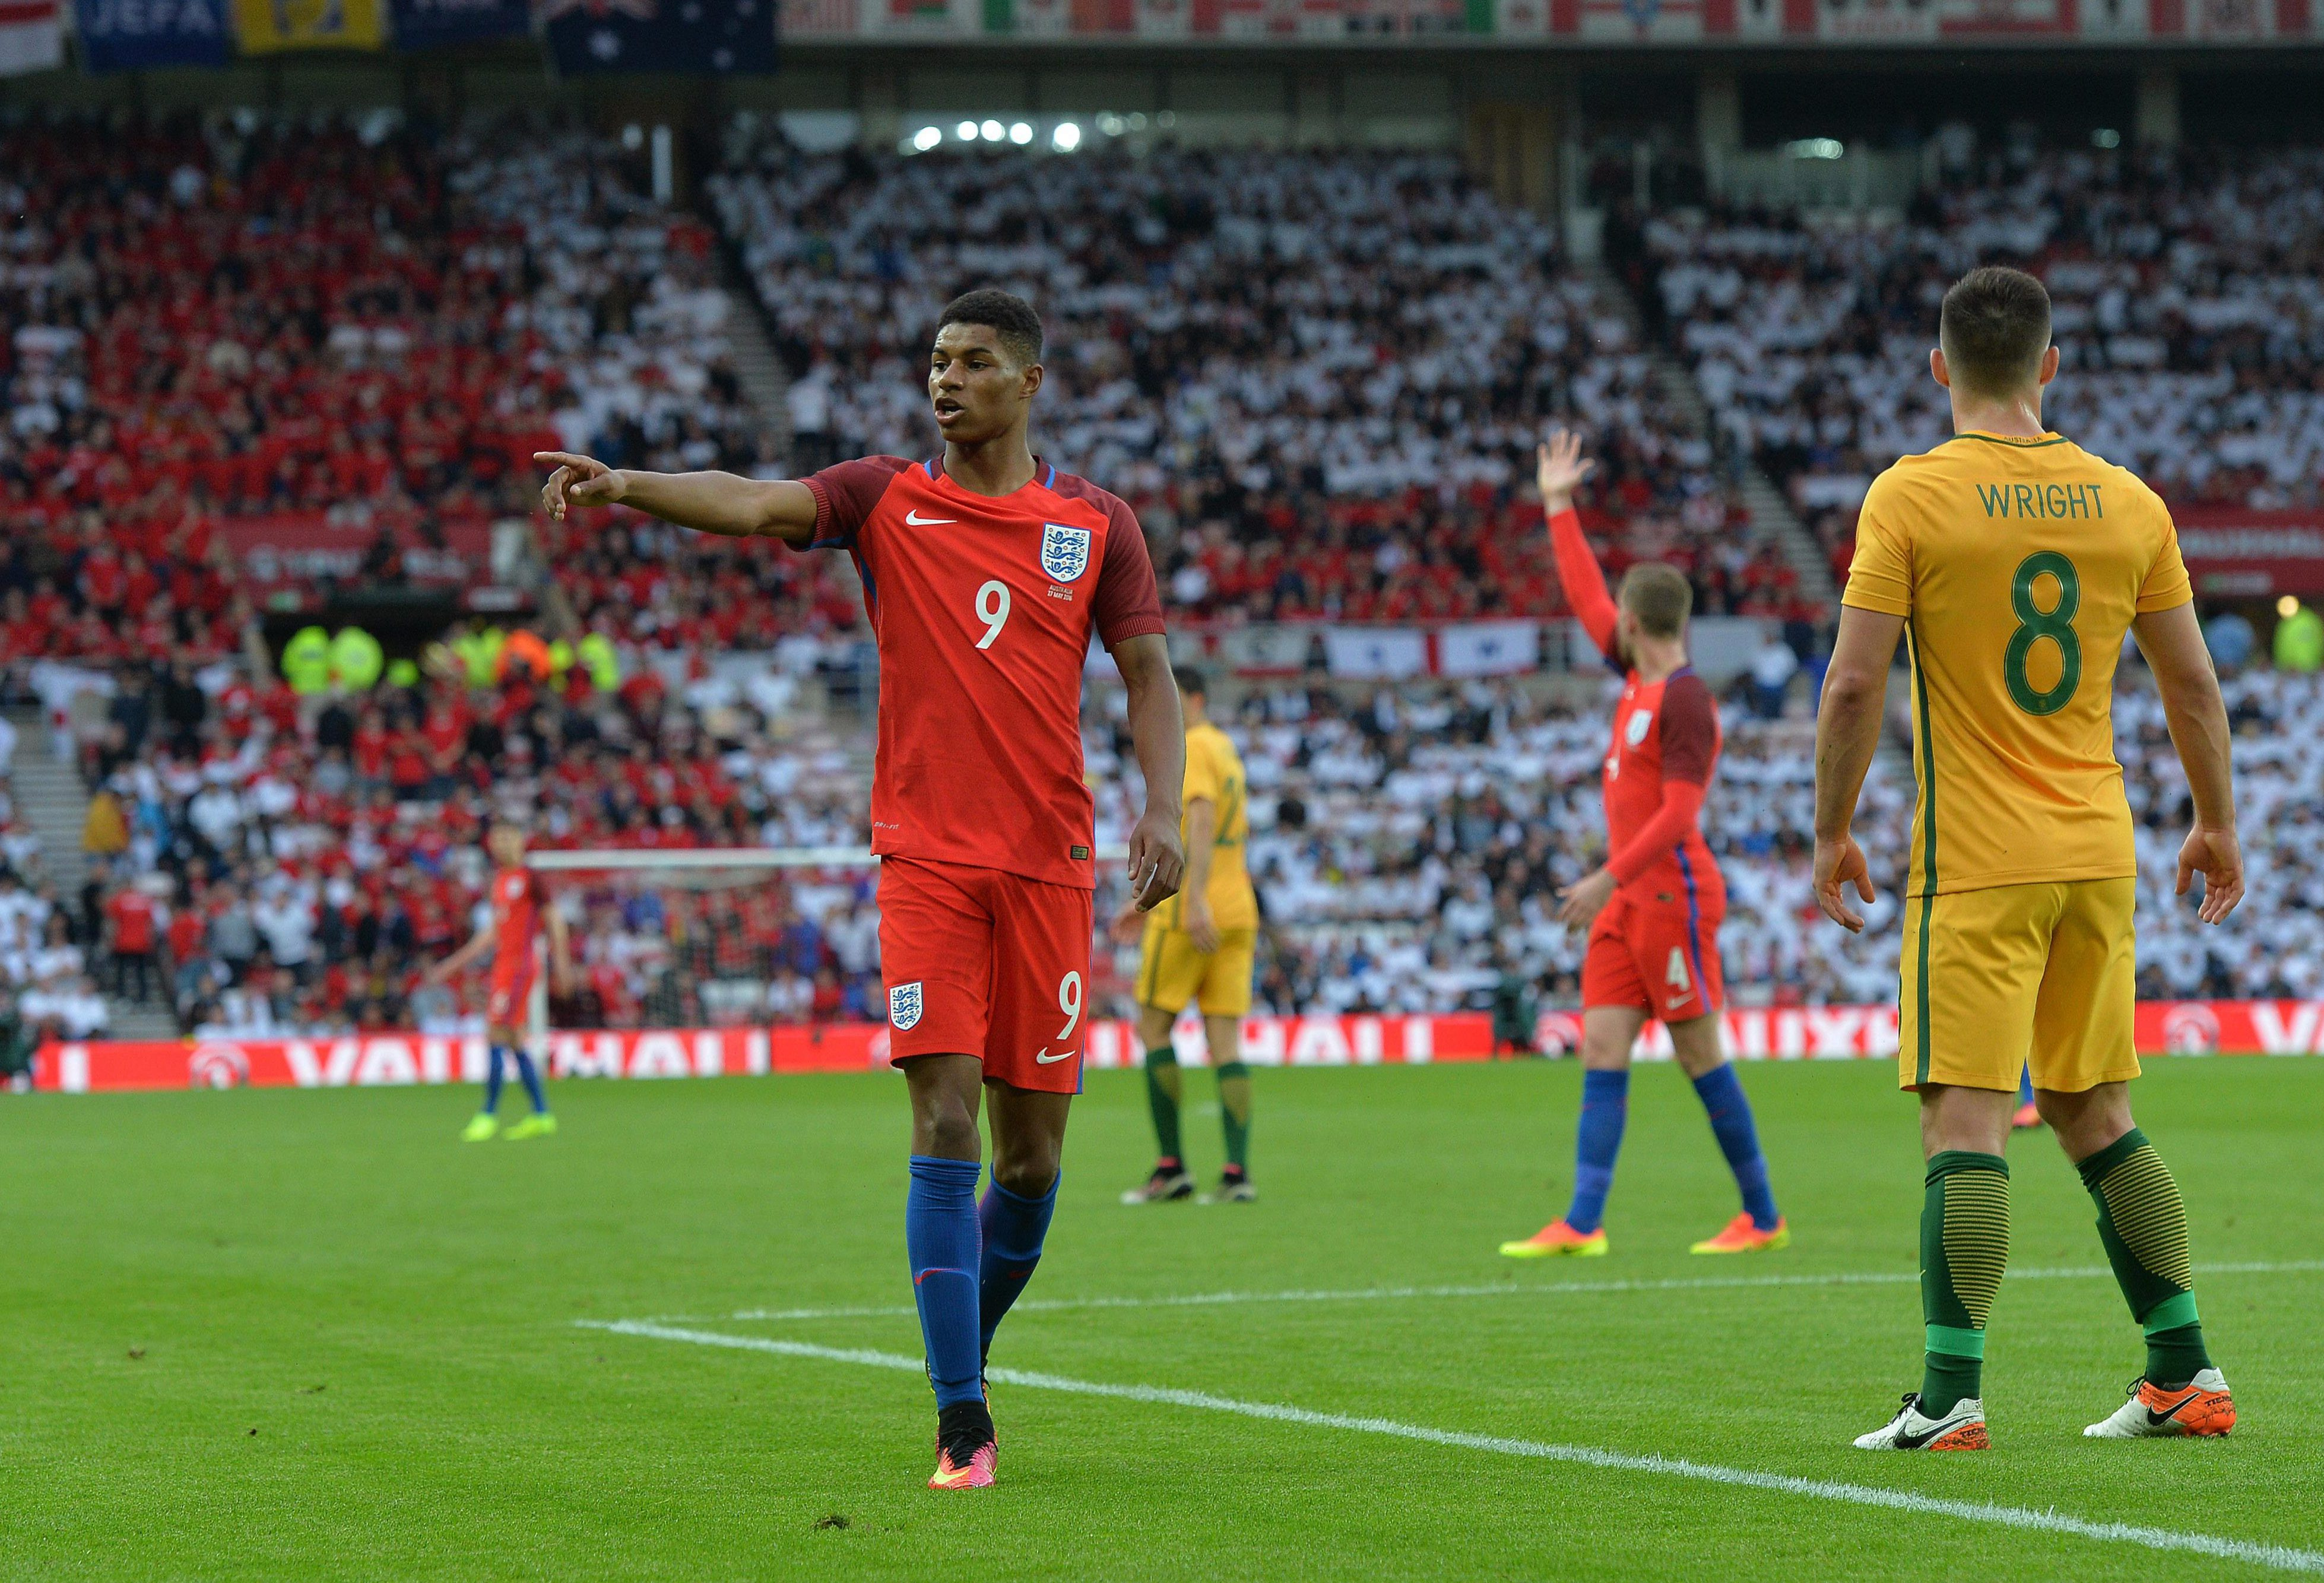 Rashford played his part in England regaining the football Ashes (not a real thing)